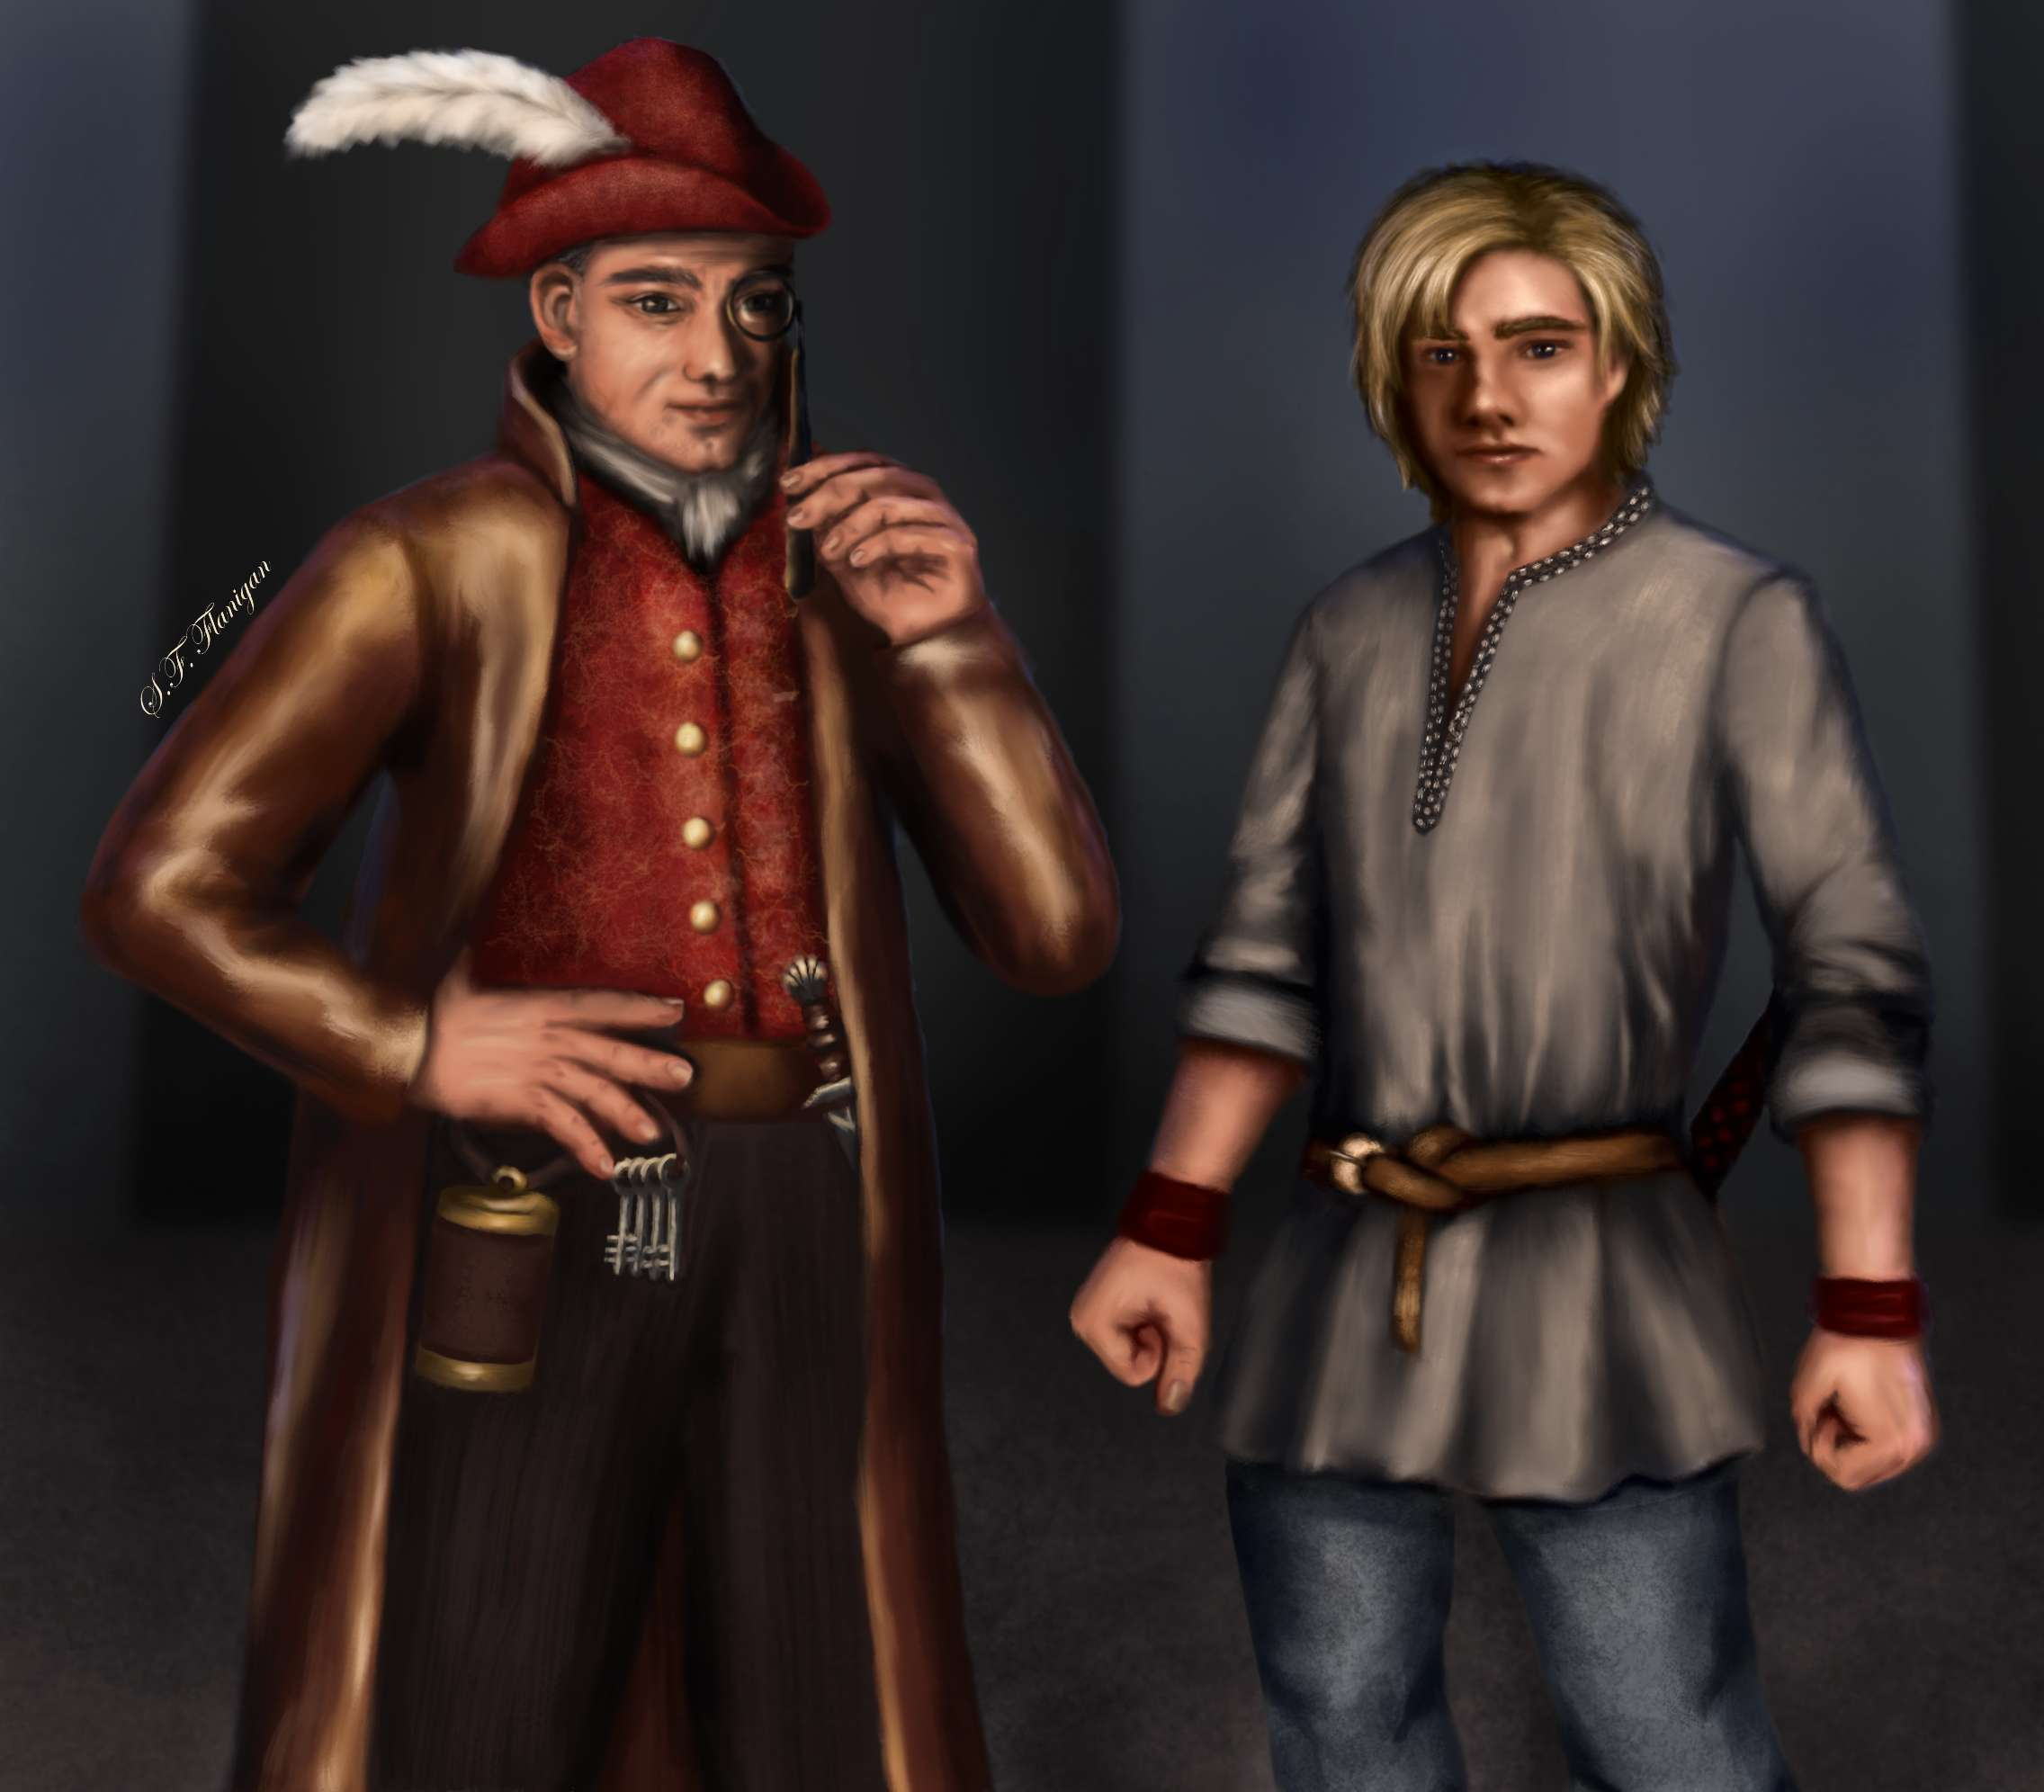 Private investigator Scond has a magnifying glass and a red vest and cap, a utility belt, and brown jacket. Flotsan wears a plain grey belted tunic. They stand inside a black and grey/blue circus tent.